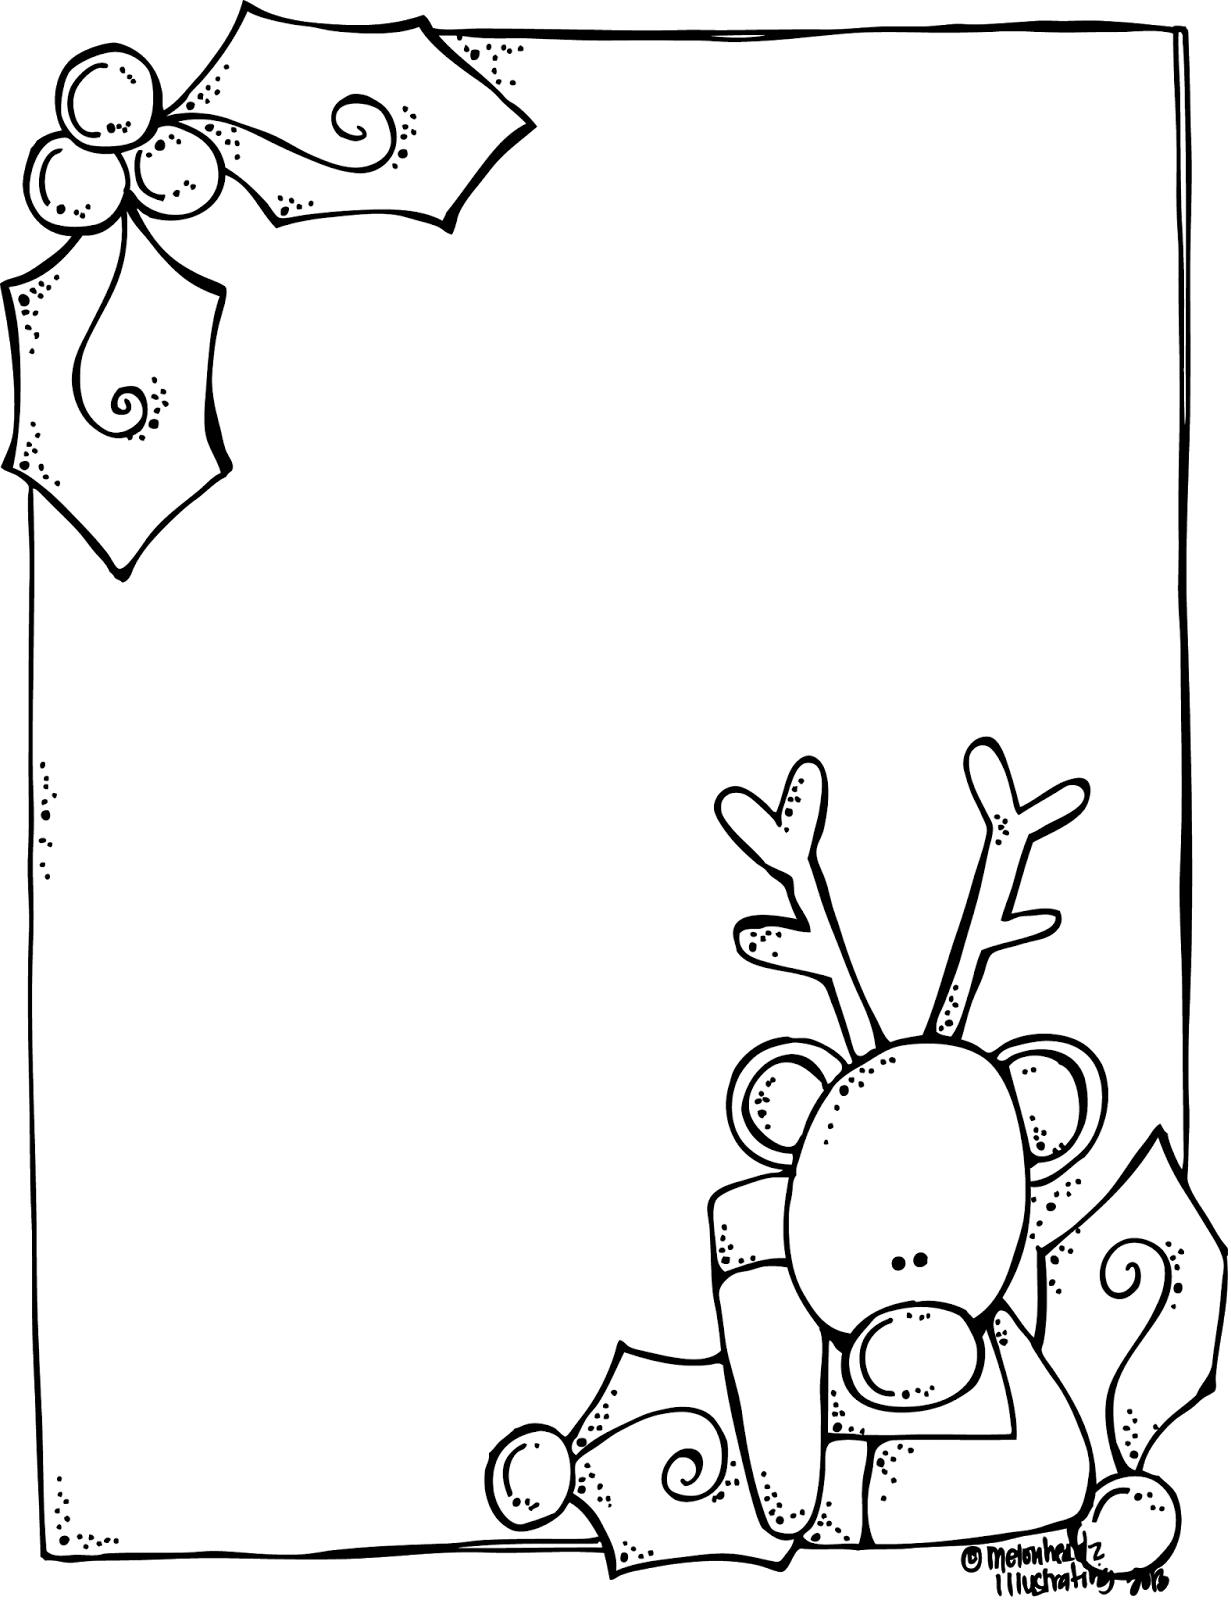 MelonHeadz A blank Rudolph letter form for Santa And its FREE